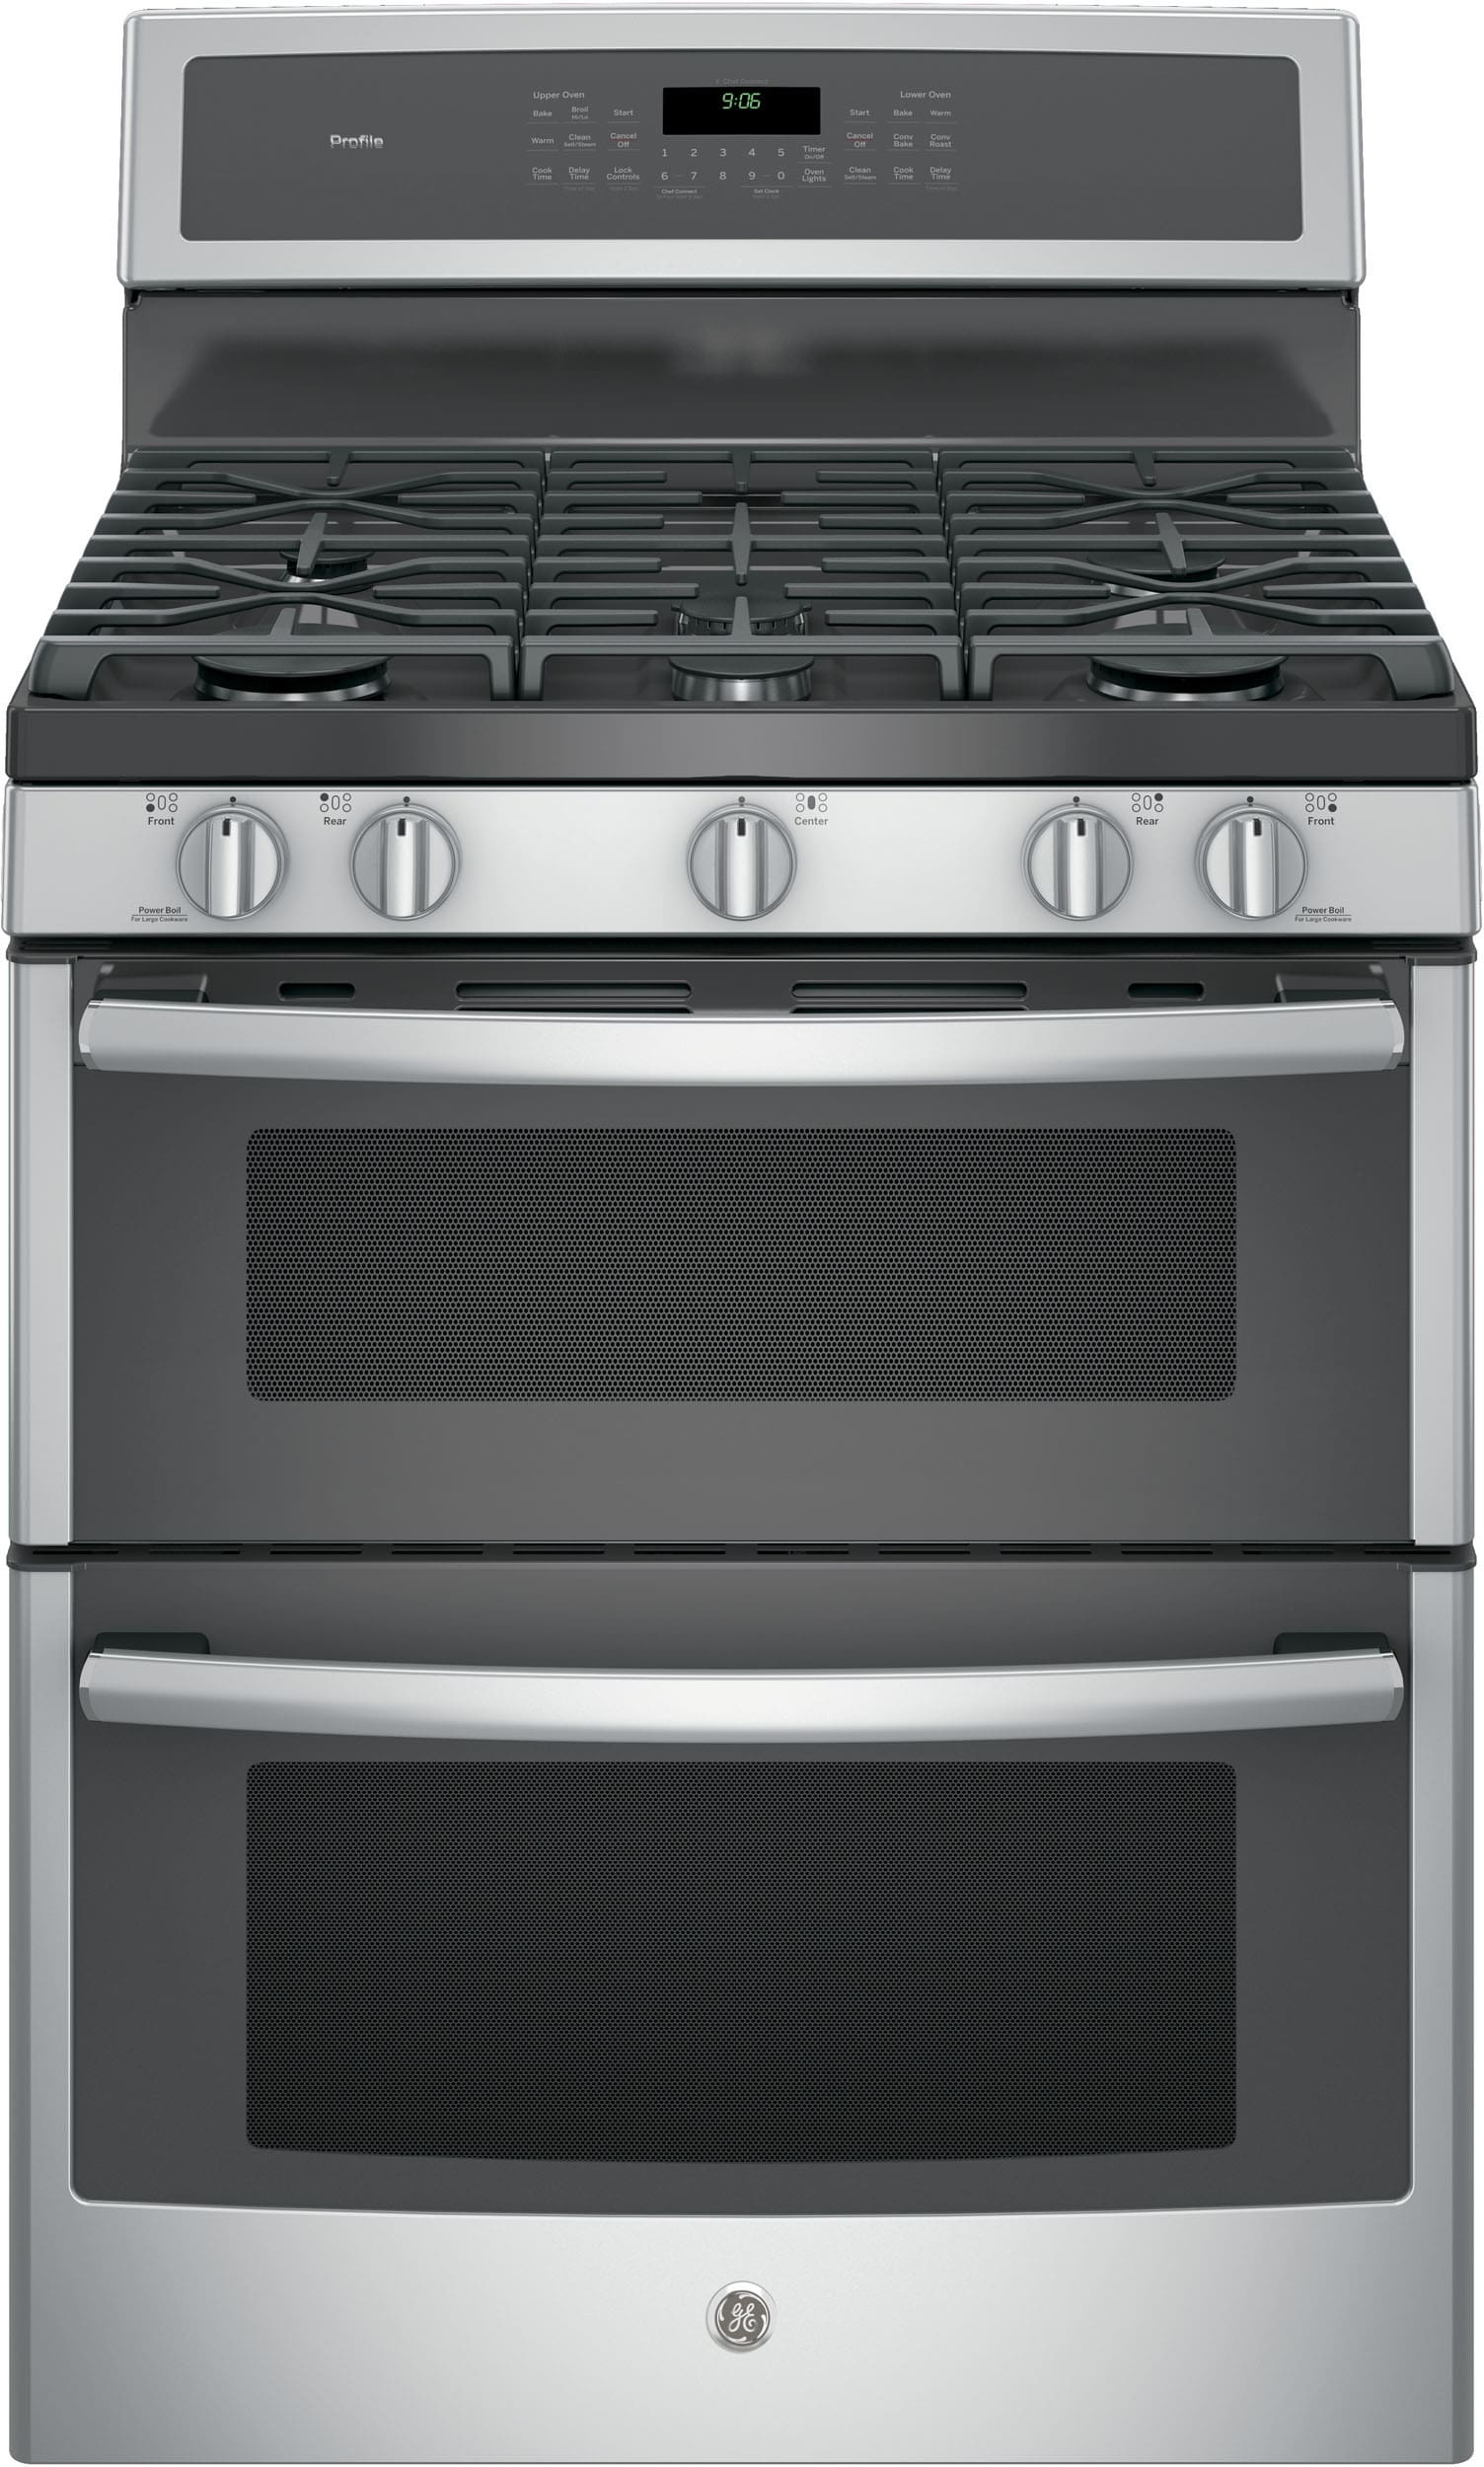 Ge Parts Wb49xpr05b Basic Cooktop Kit For Ge Profile Gas